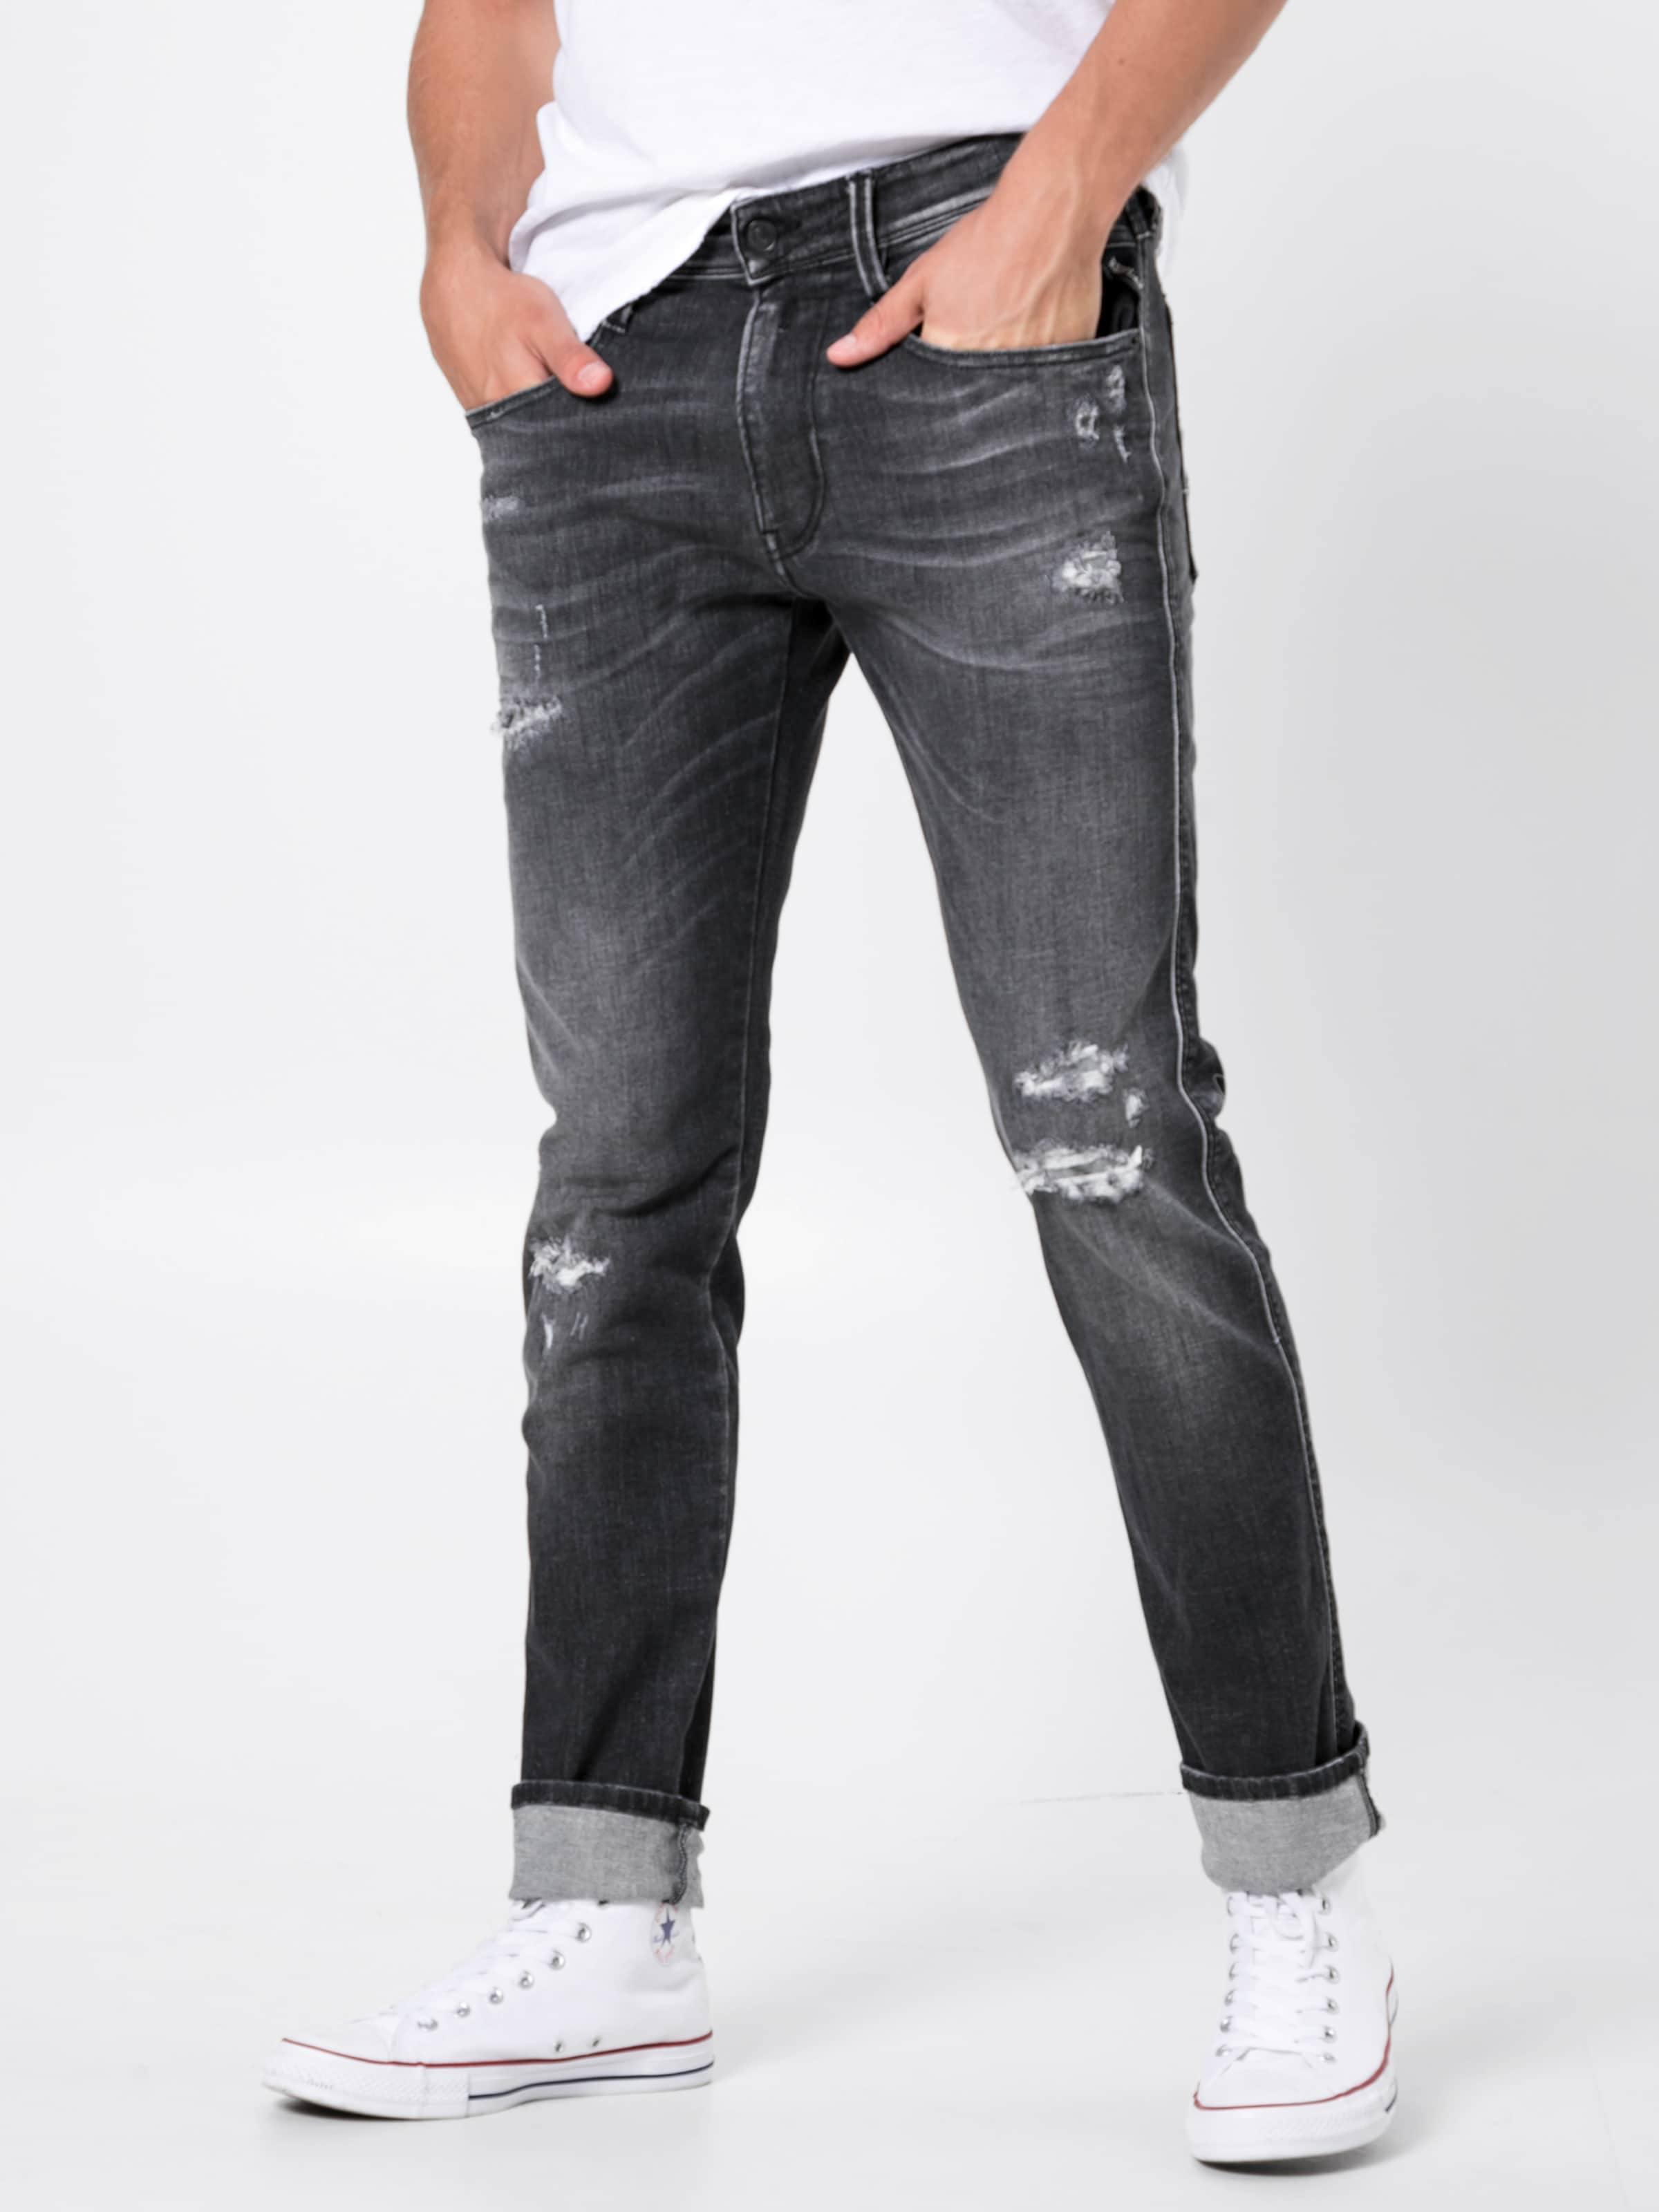 Replay Jeans Grey In Denim 'anbass' f7g6vyYb